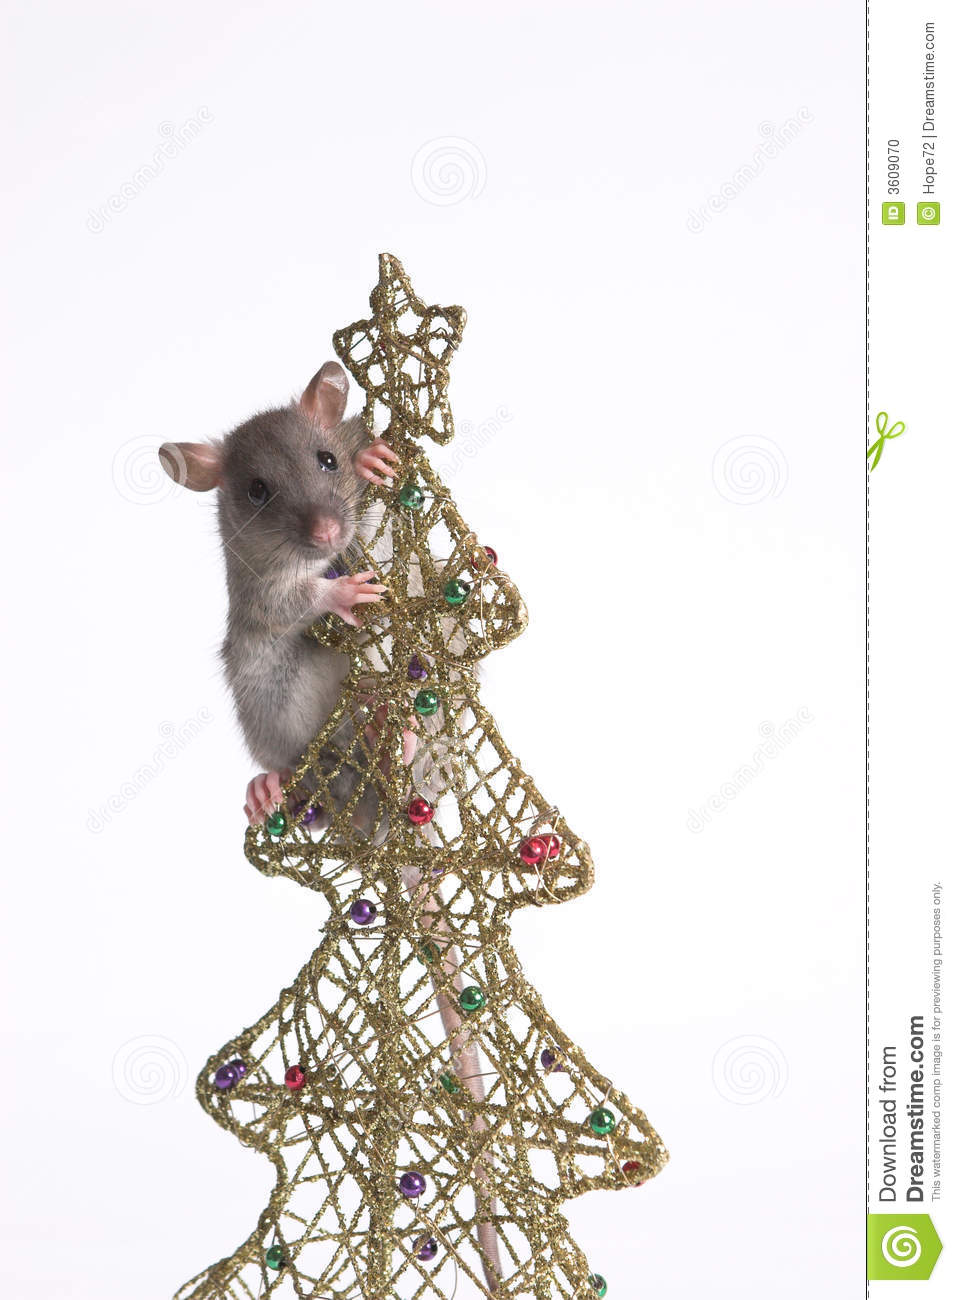 A rat stock photo. Image of white, tail, year, ears, background ...